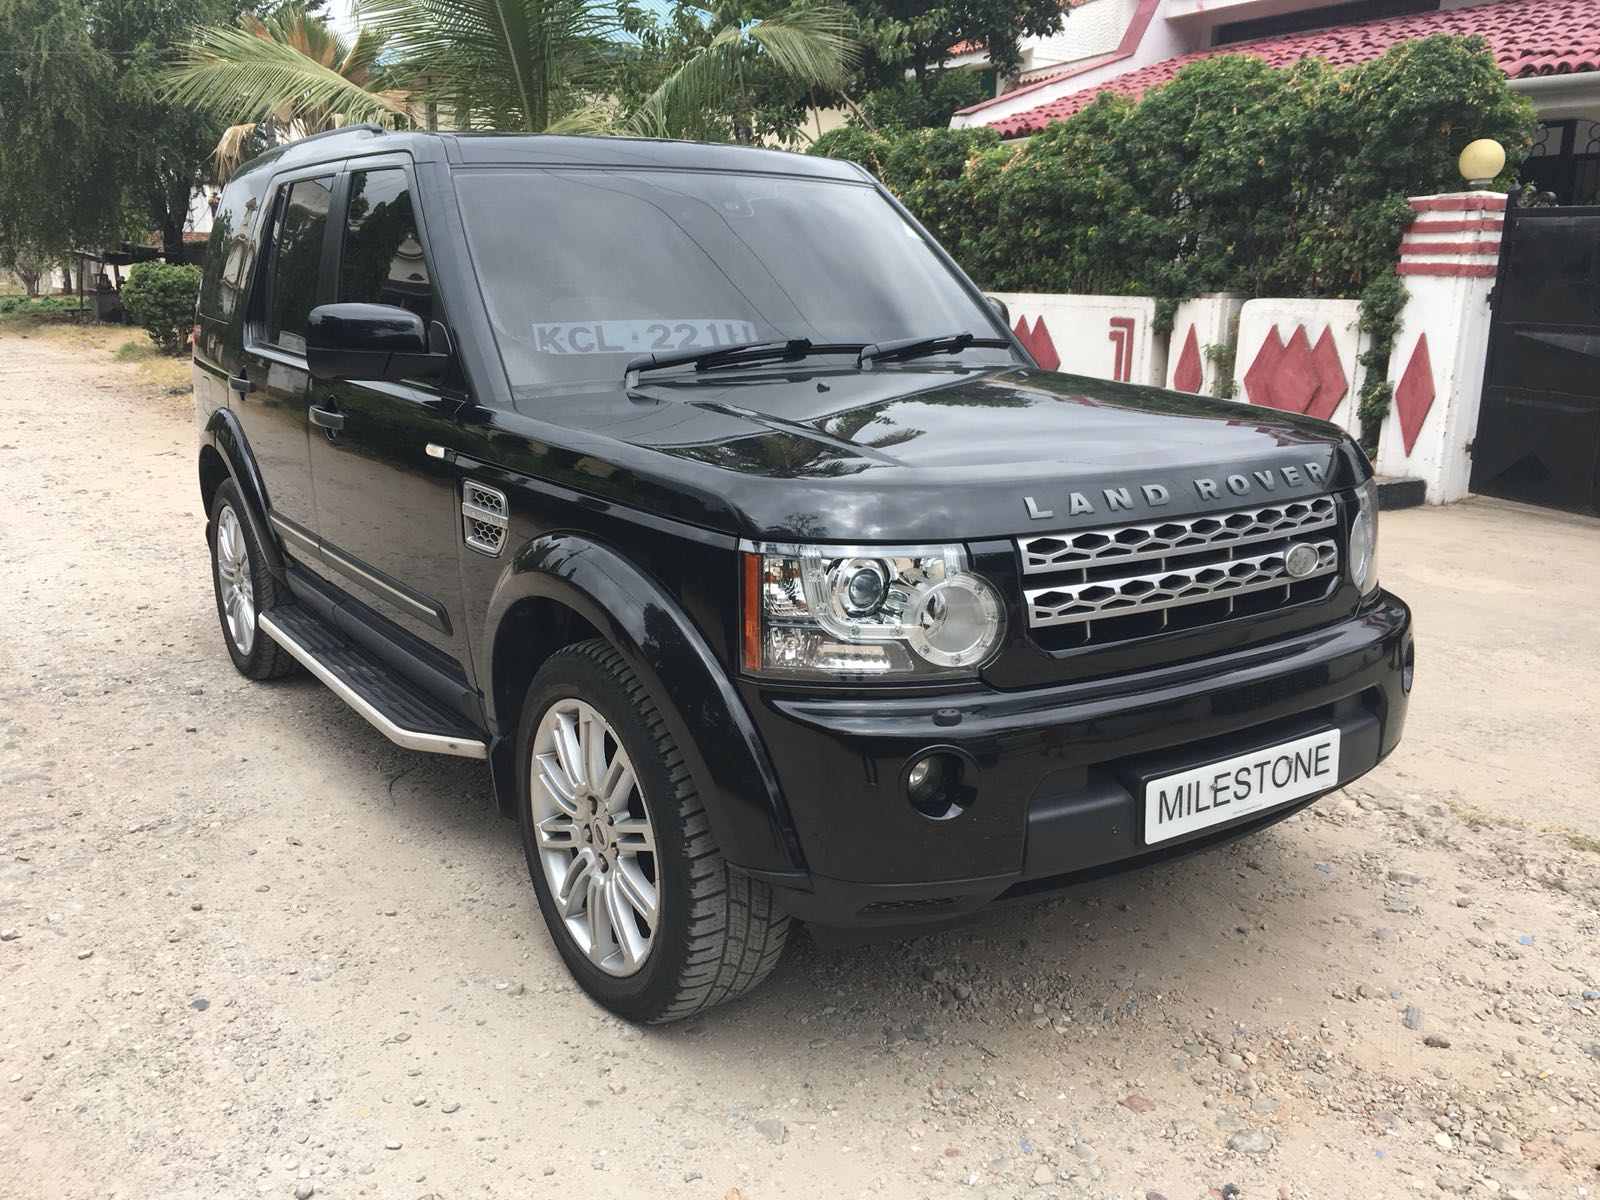 2010 Land Rover Discovery 4 HSE Diesel 3.0 Auto